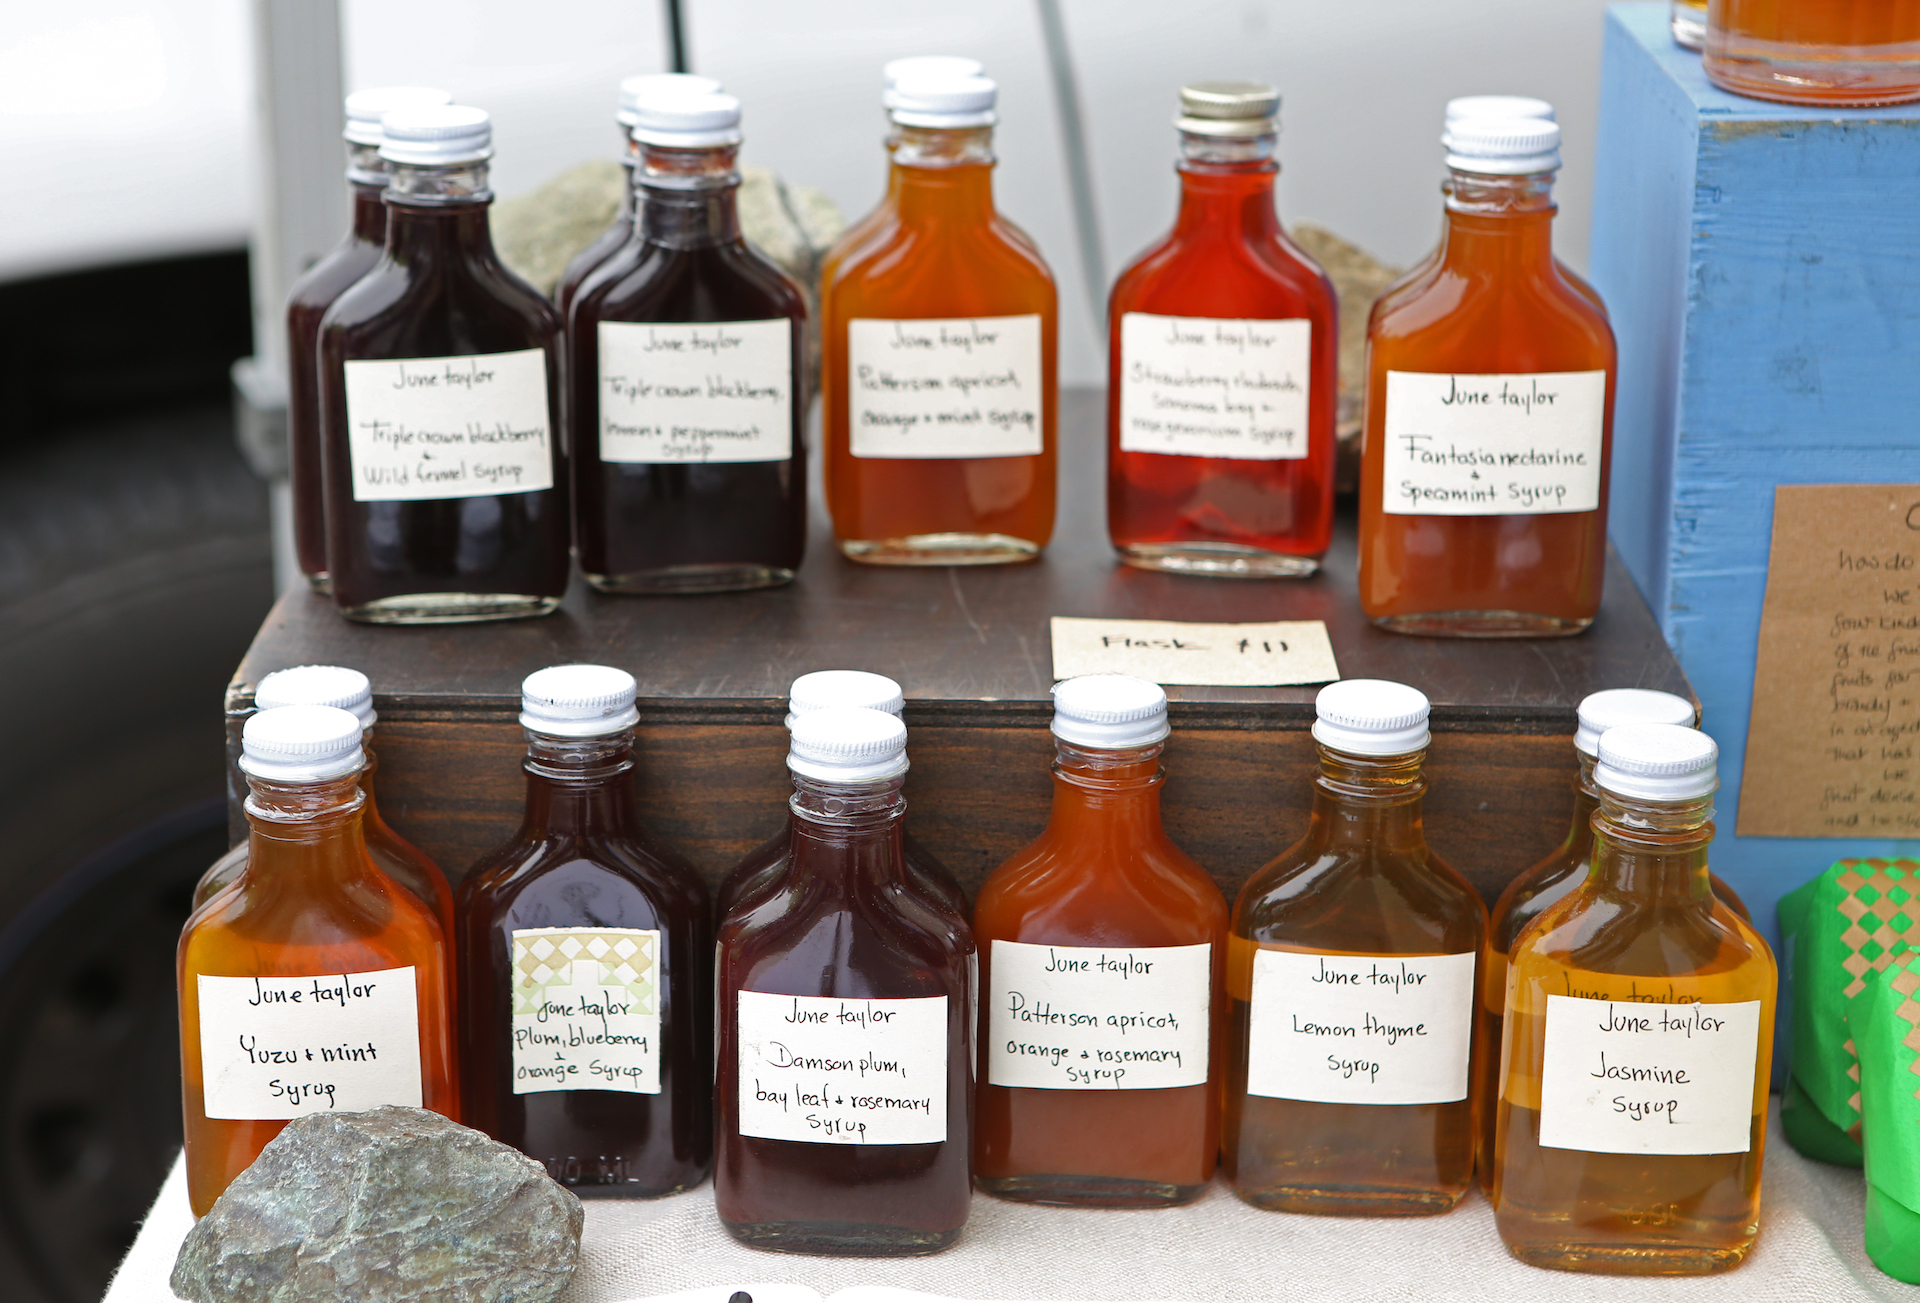 June Taylor's unique herbal, floral, and fruit syrups.